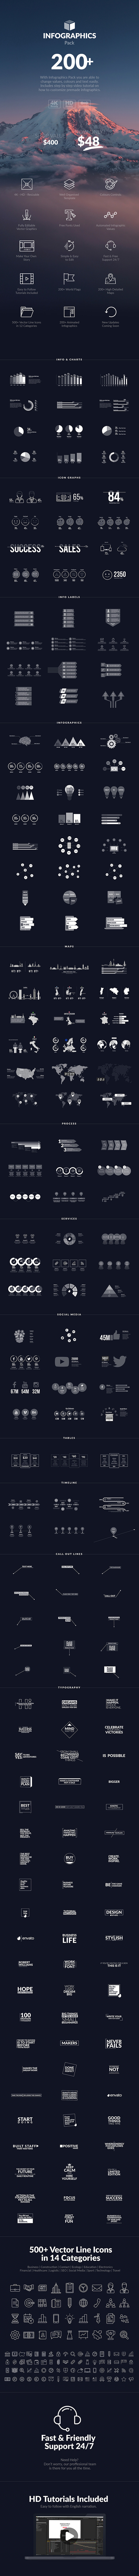 Infographics Pack - 8